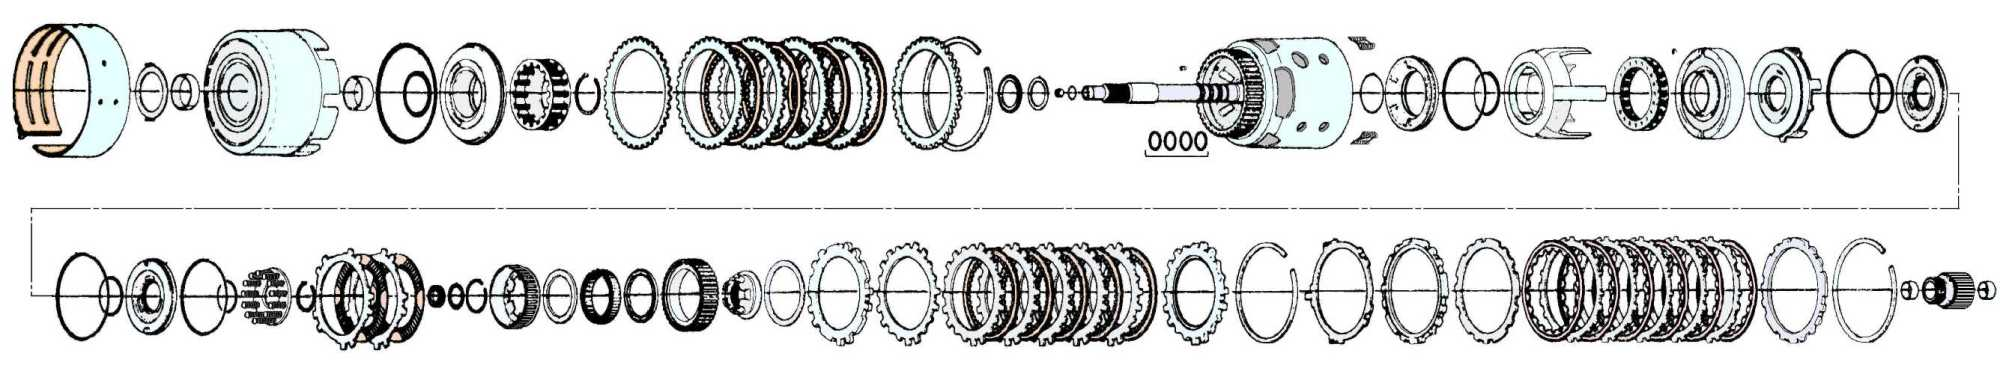 hight resolution of 4l60e assemblygm 4l60e parts diagram 5